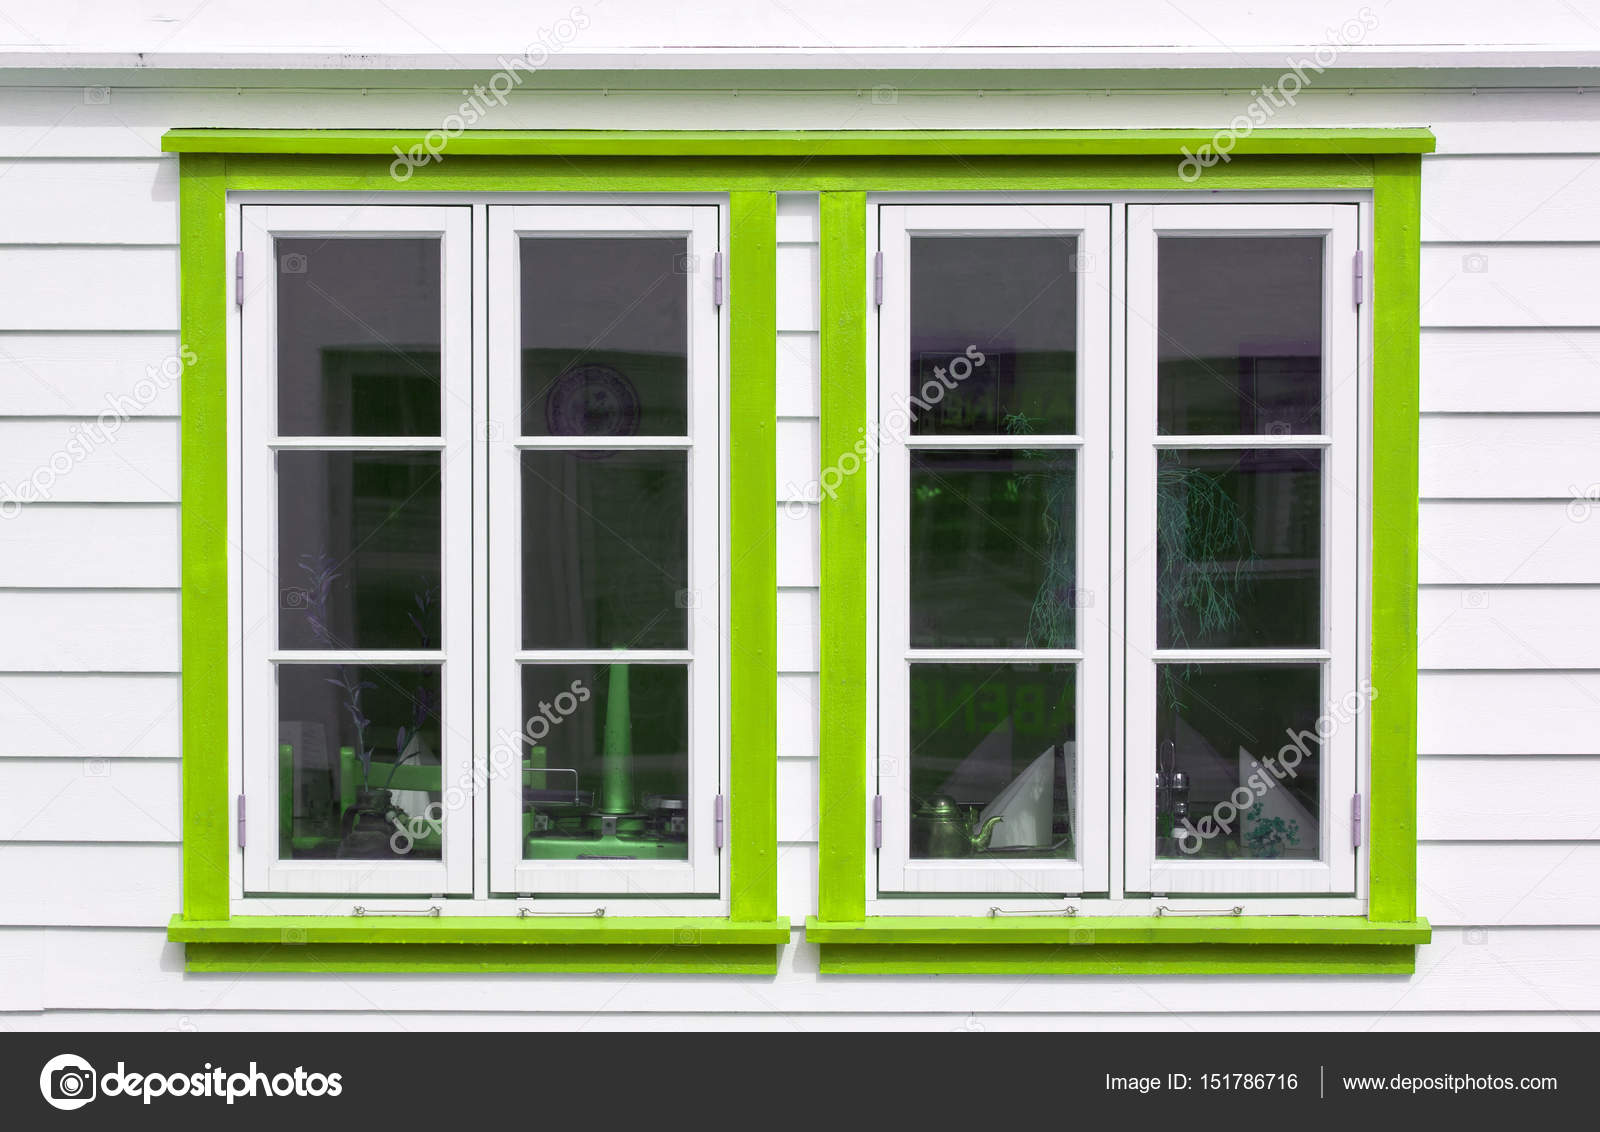 Skandinavisches haus innen  Windows in skandinavischen Haus — Stockfoto © Pixelery.com #151786716